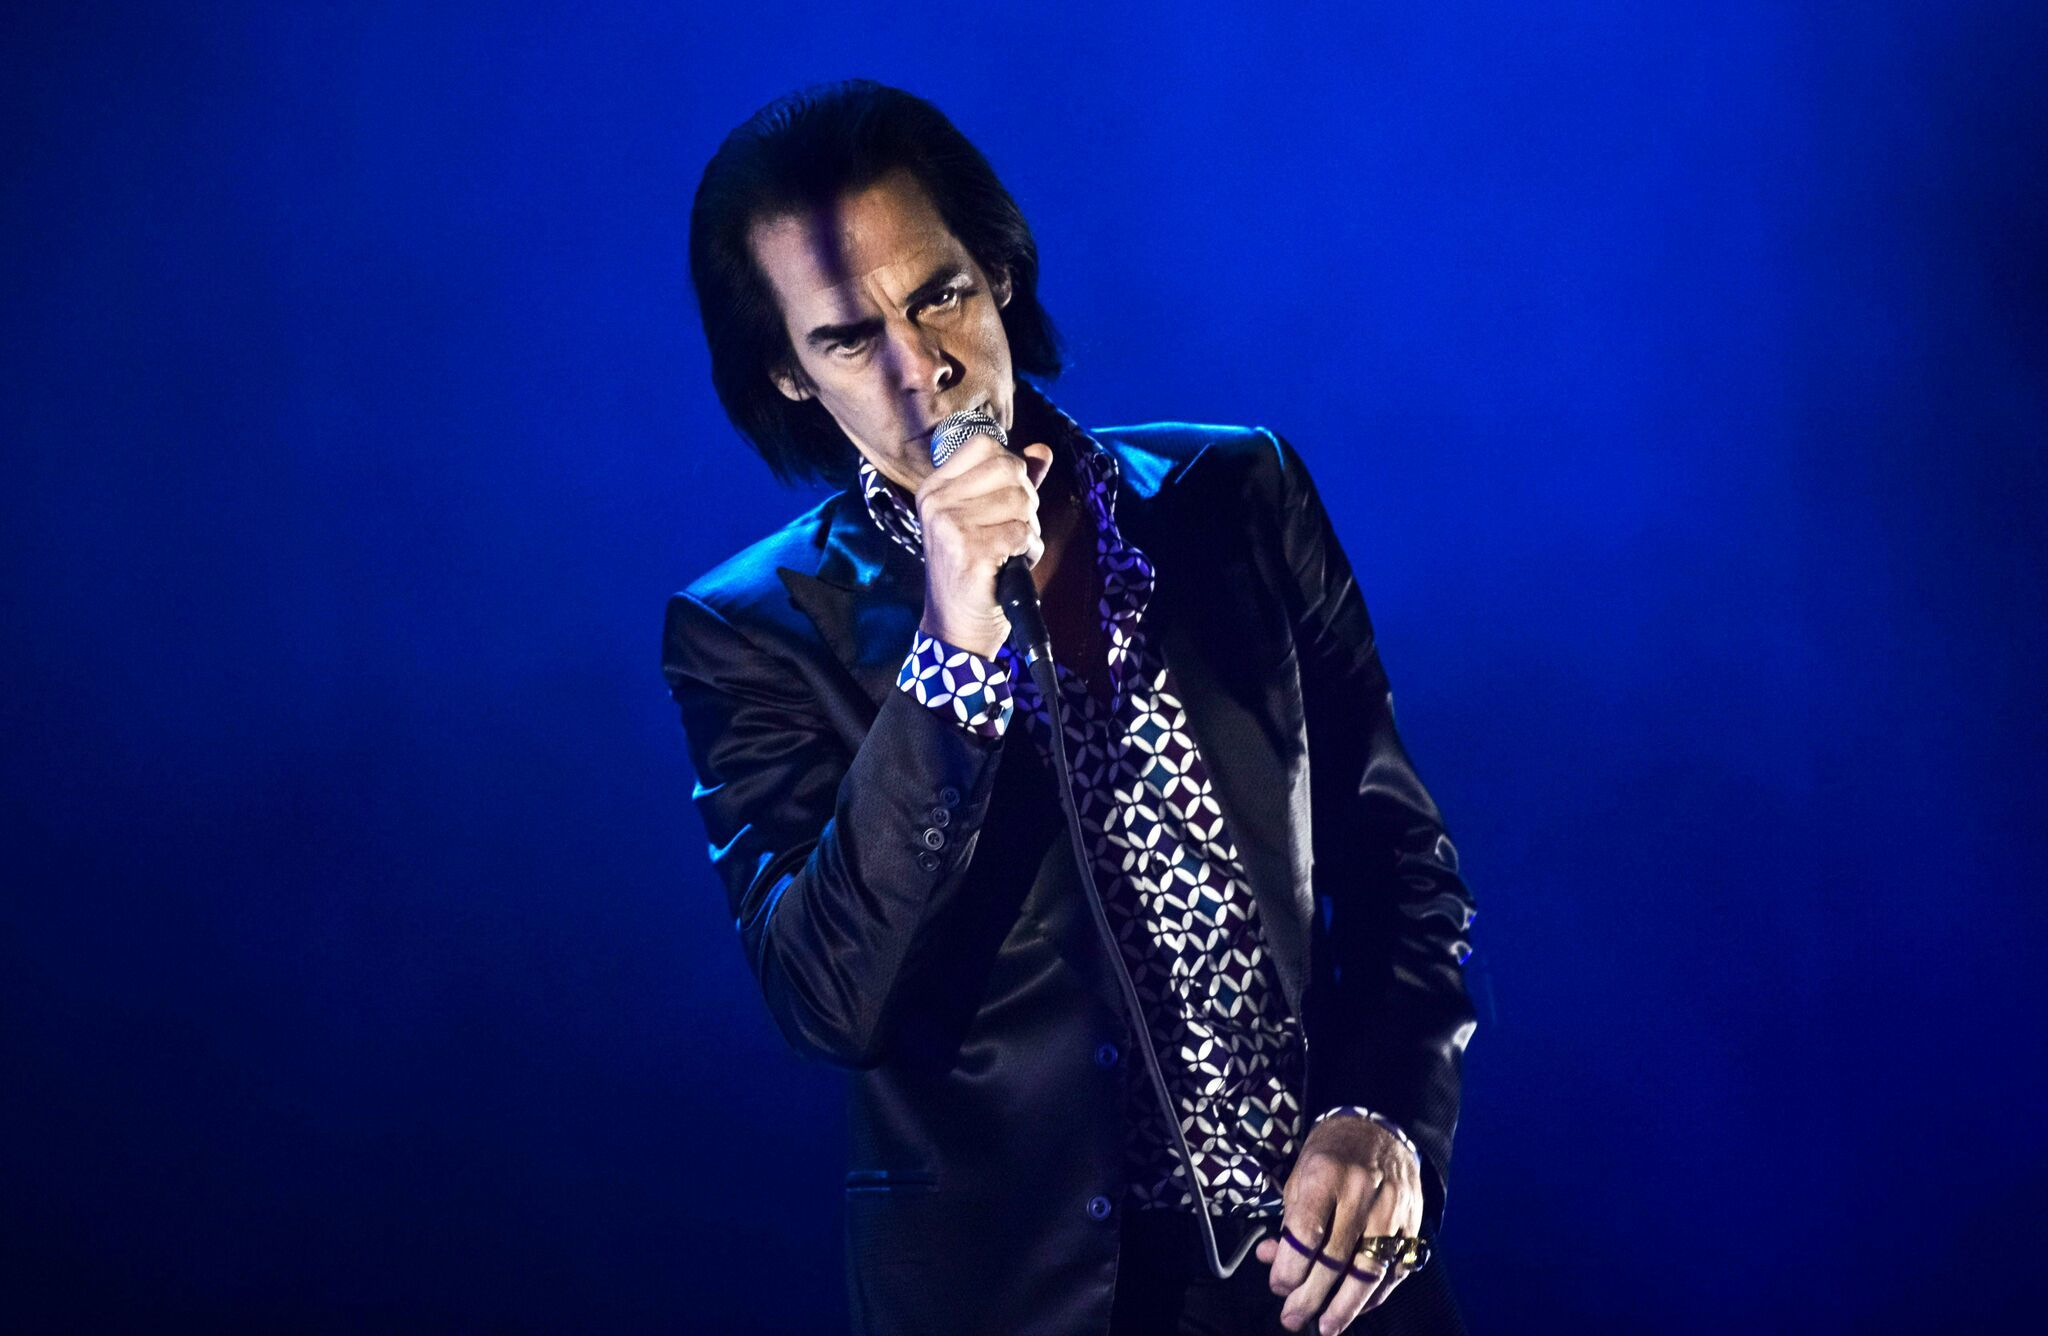 Nick Cave and the Bad Seeds return